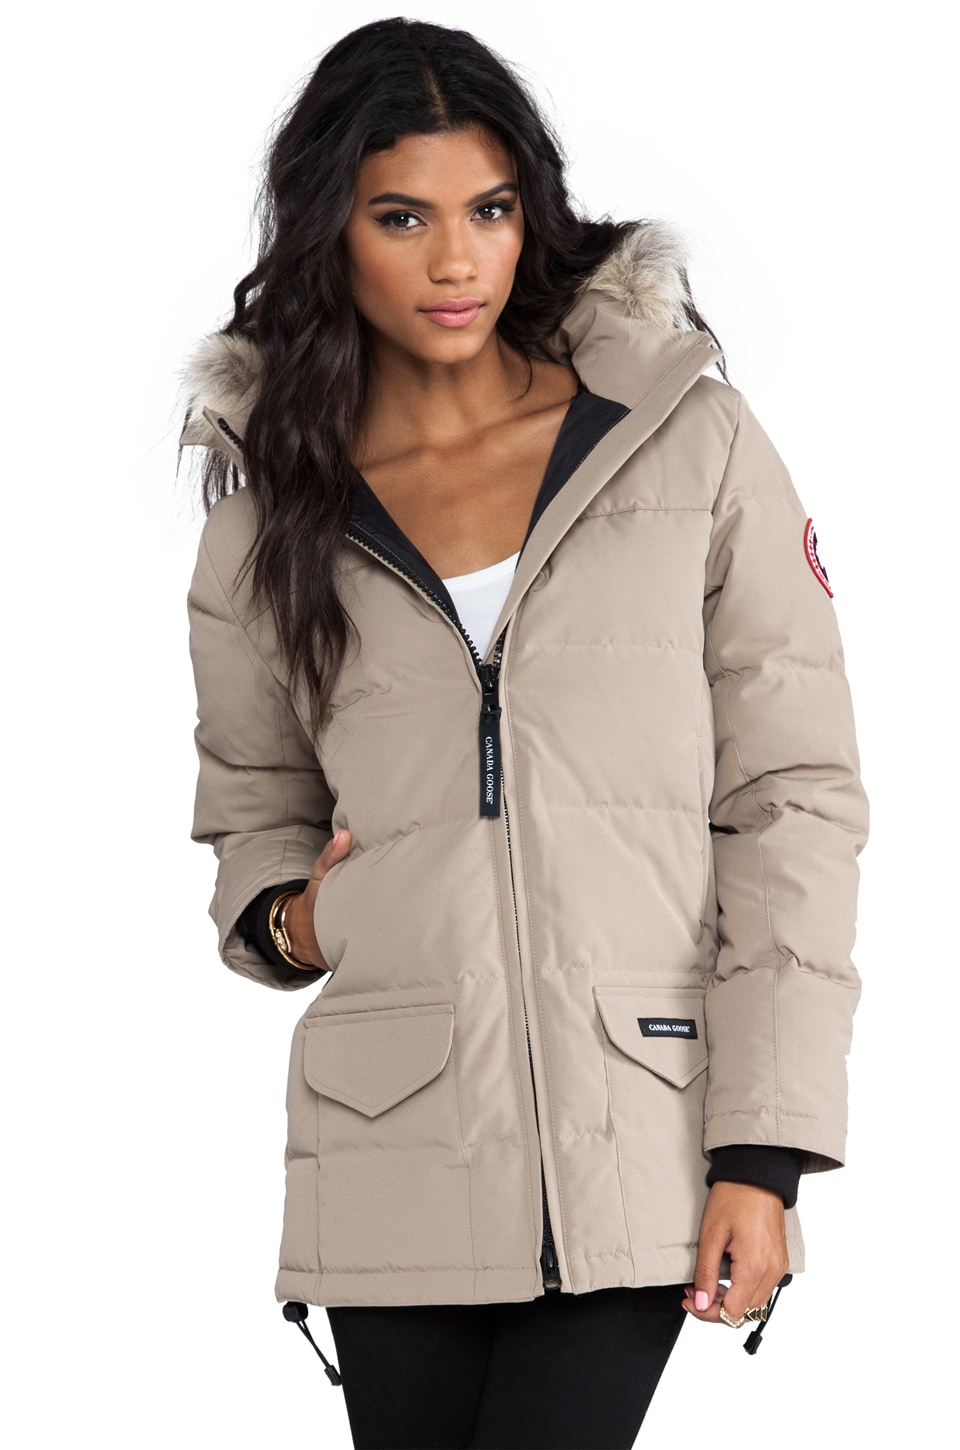 Canada Goose jackets online authentic - Canada Goose Solaris Parka with Coyote Fur in Tan | REVOLVE